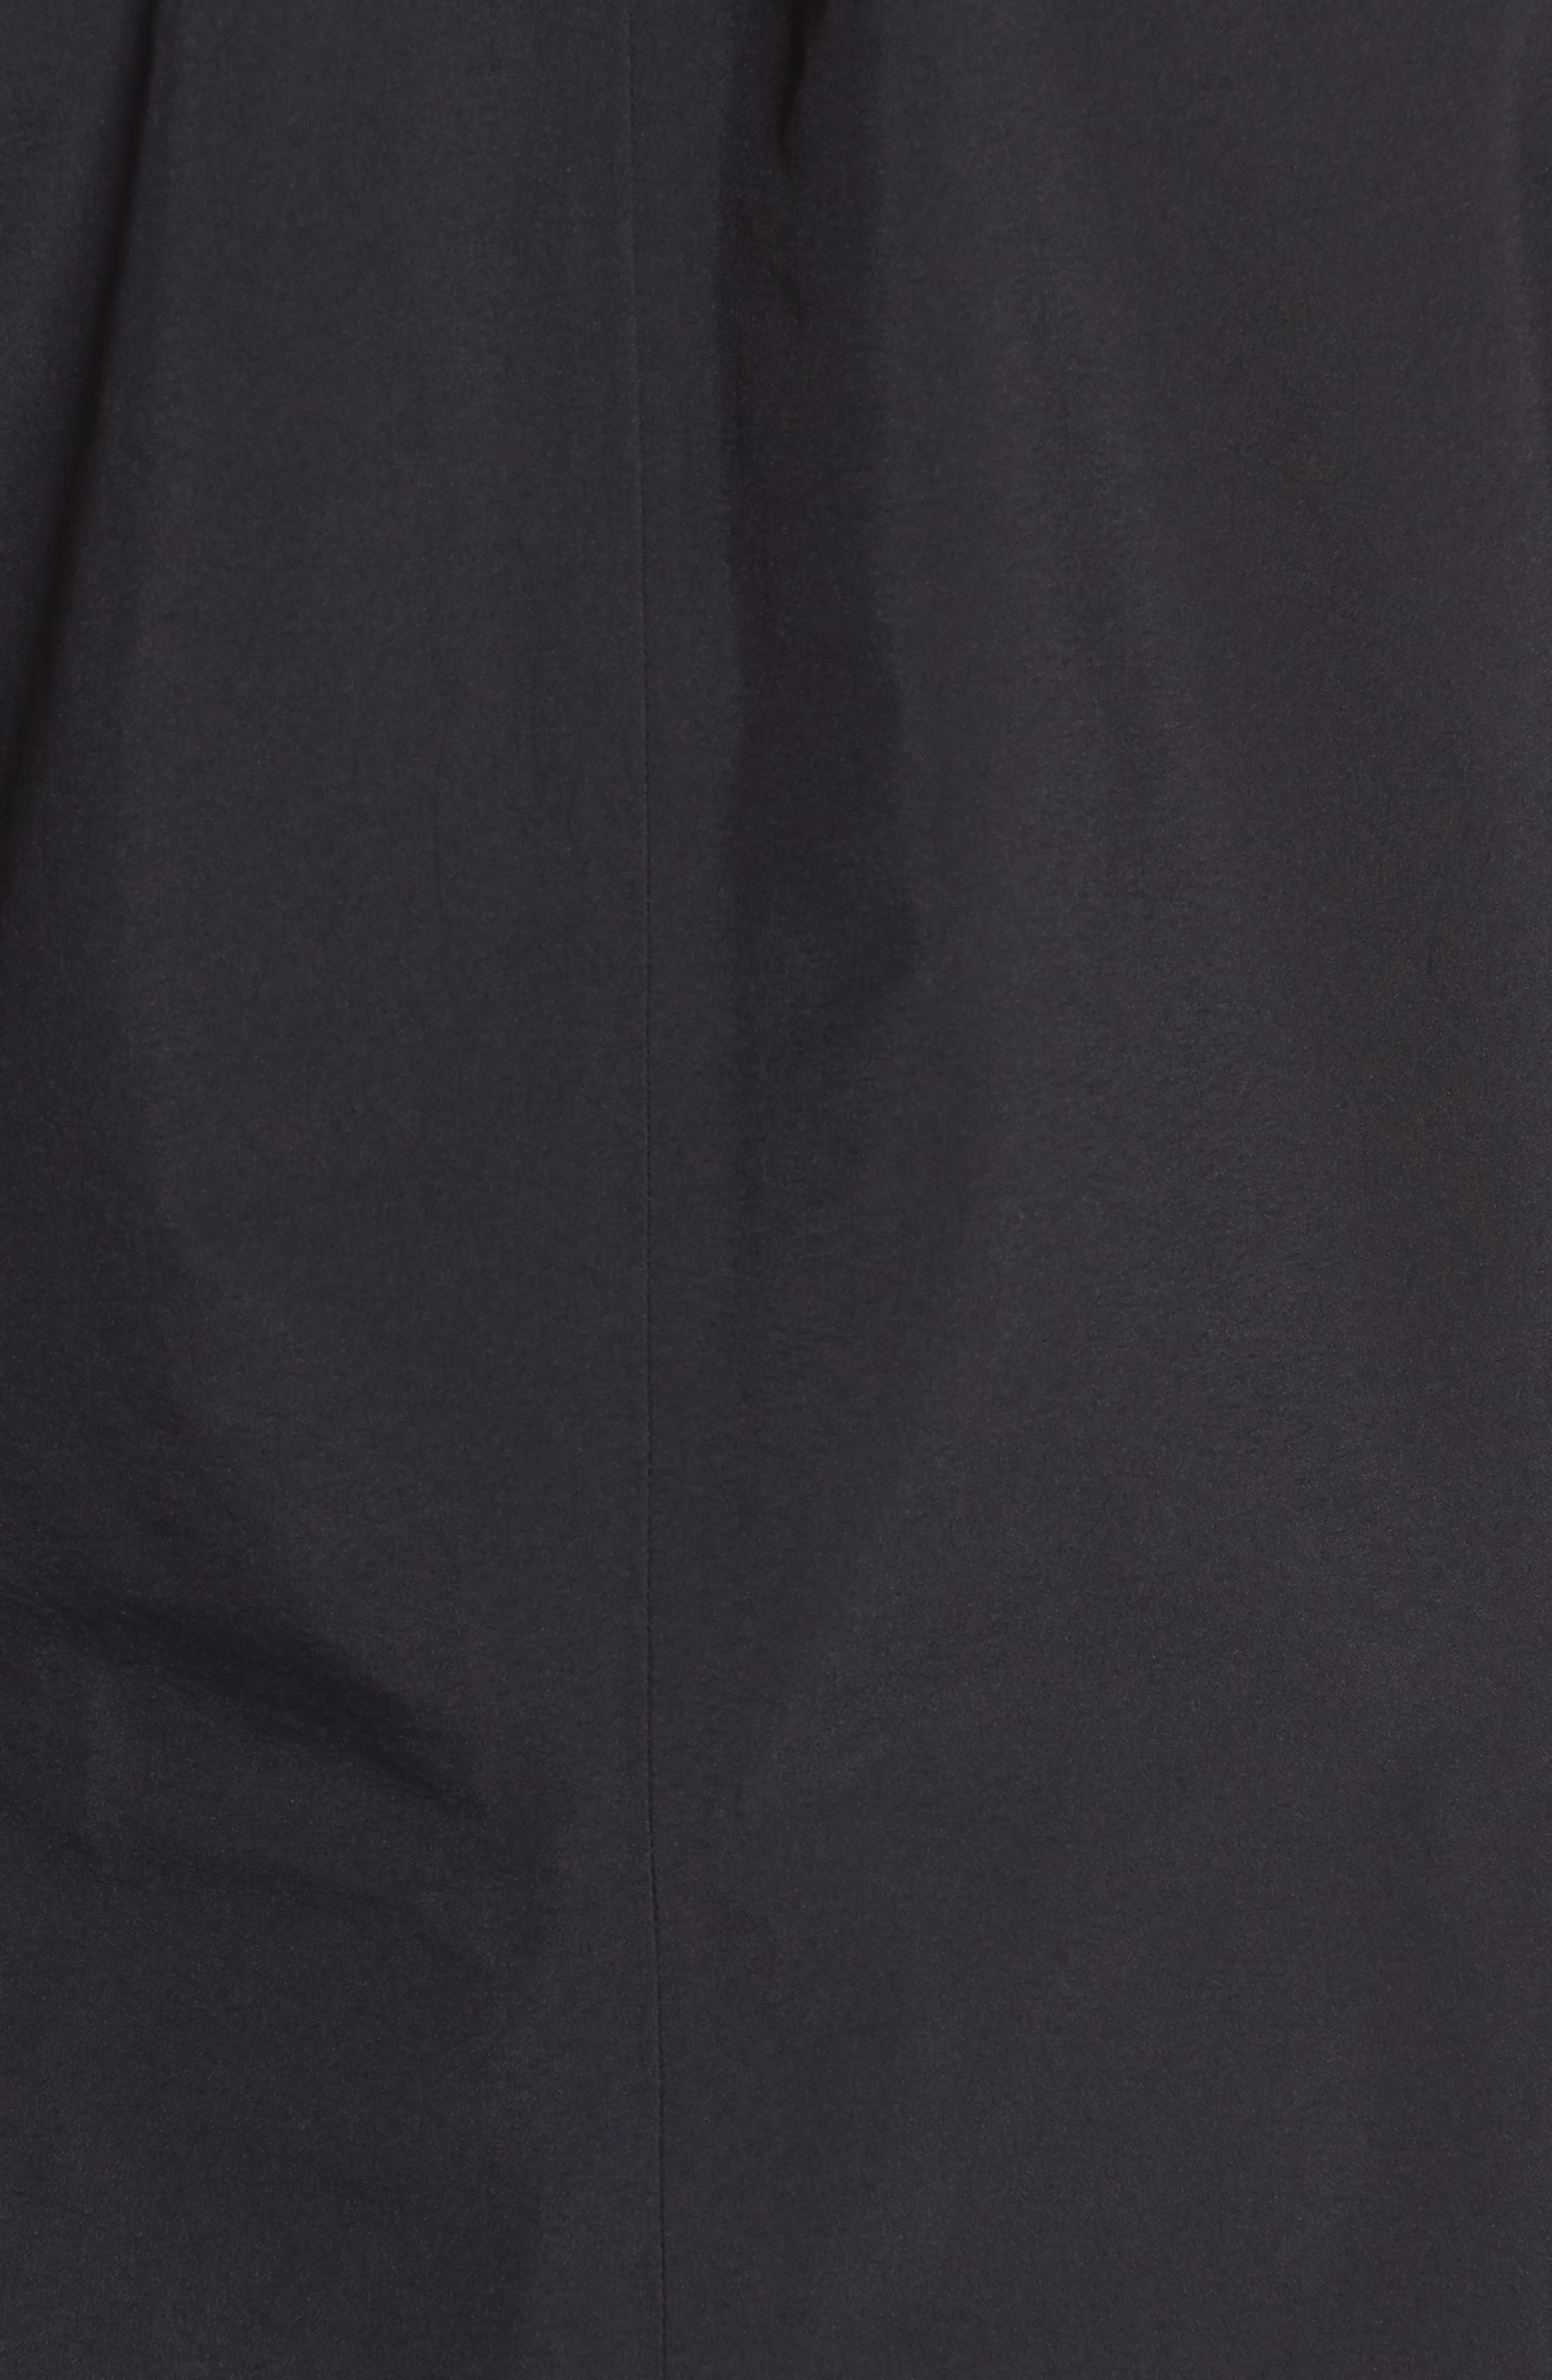 Codetta Waterproof Relaxed Fit Gore-Tex<sup>®</sup> 3L Rain Jacket,                             Alternate thumbnail 7, color,                             001